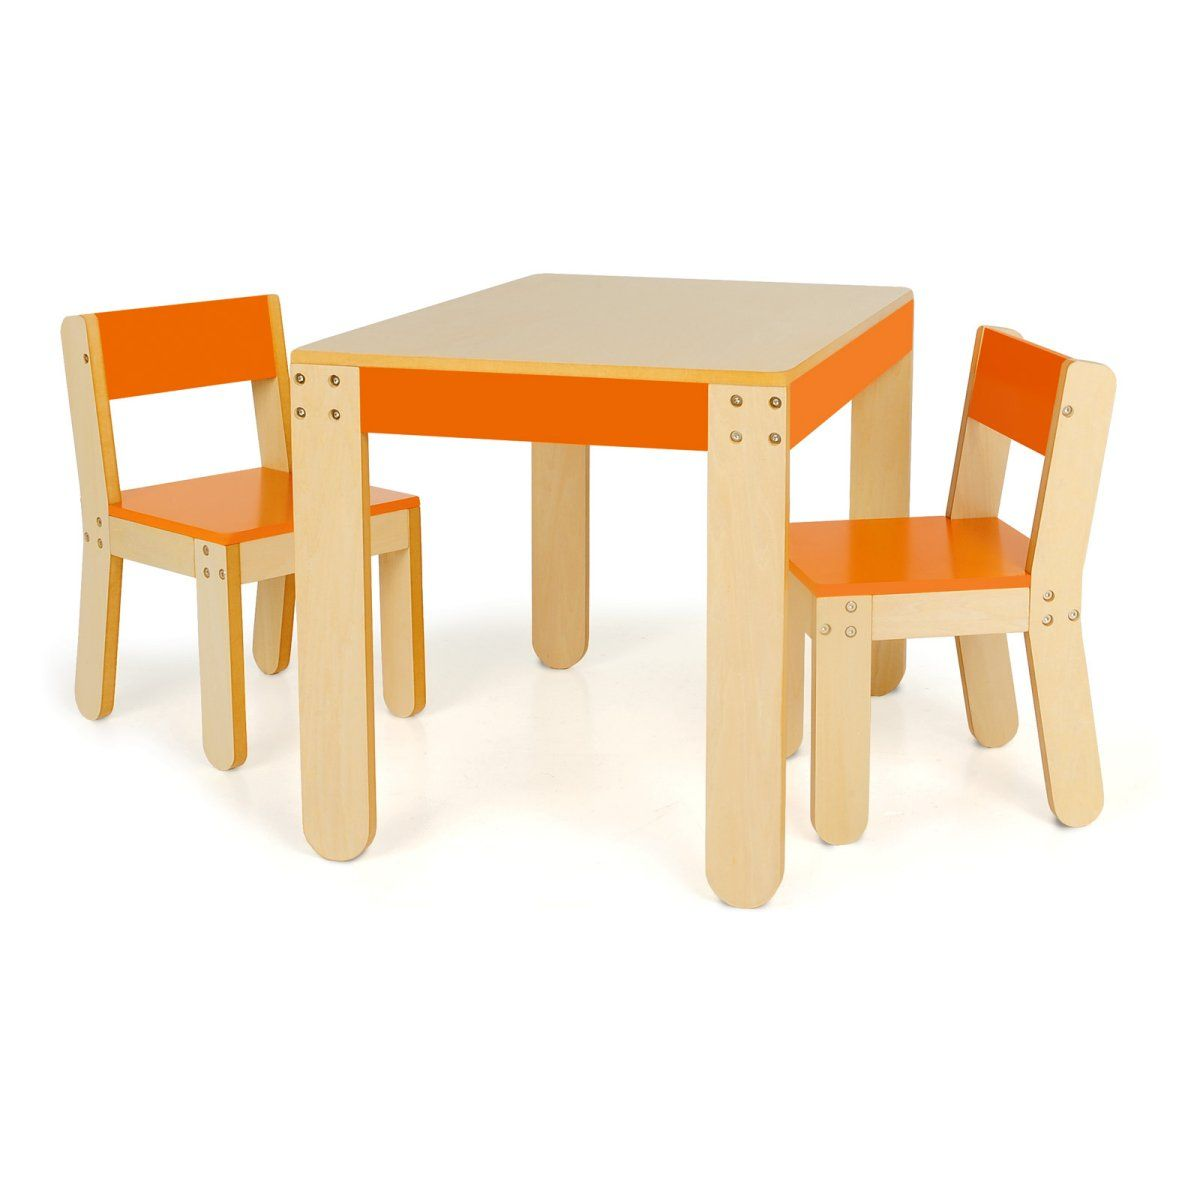 Kids Table Chairs Orange Kids Table And Chairs Toddler Table And Chairs Table And Chairs